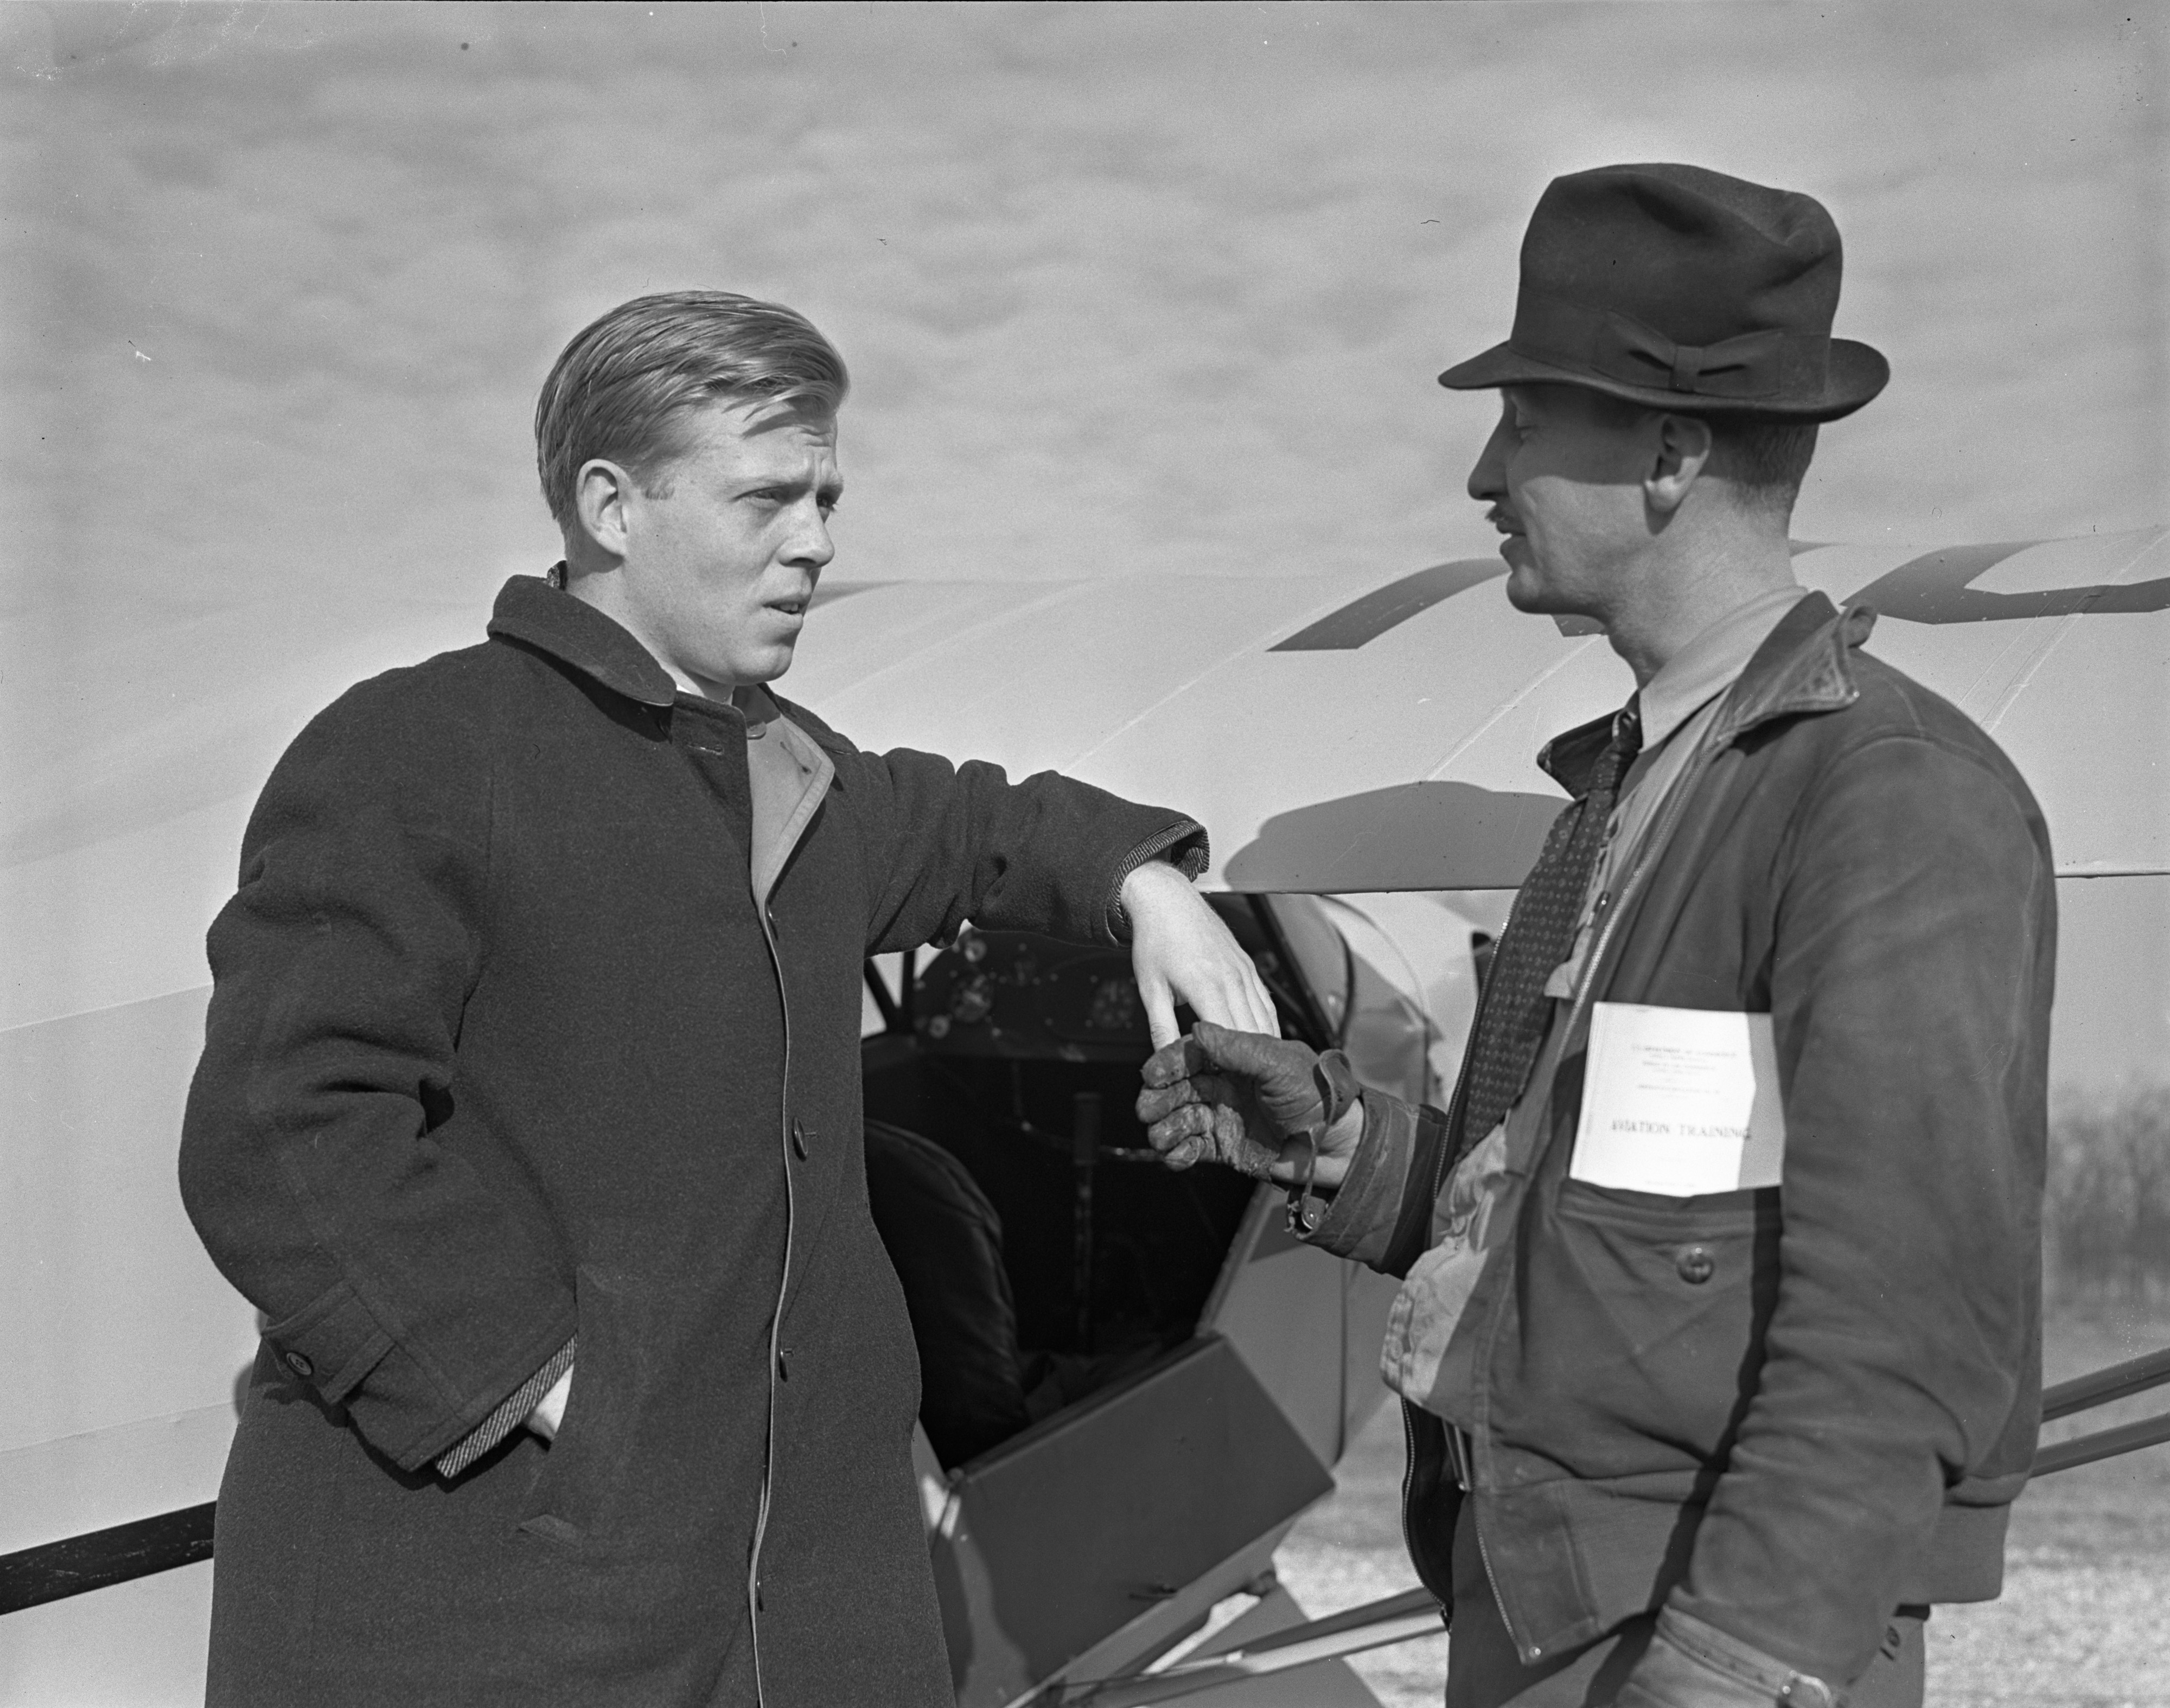 Instructor George M. Downs with Donald R. Knapp, the First Student to Solo in U.S. War Preparedness Program, March, 1939 image